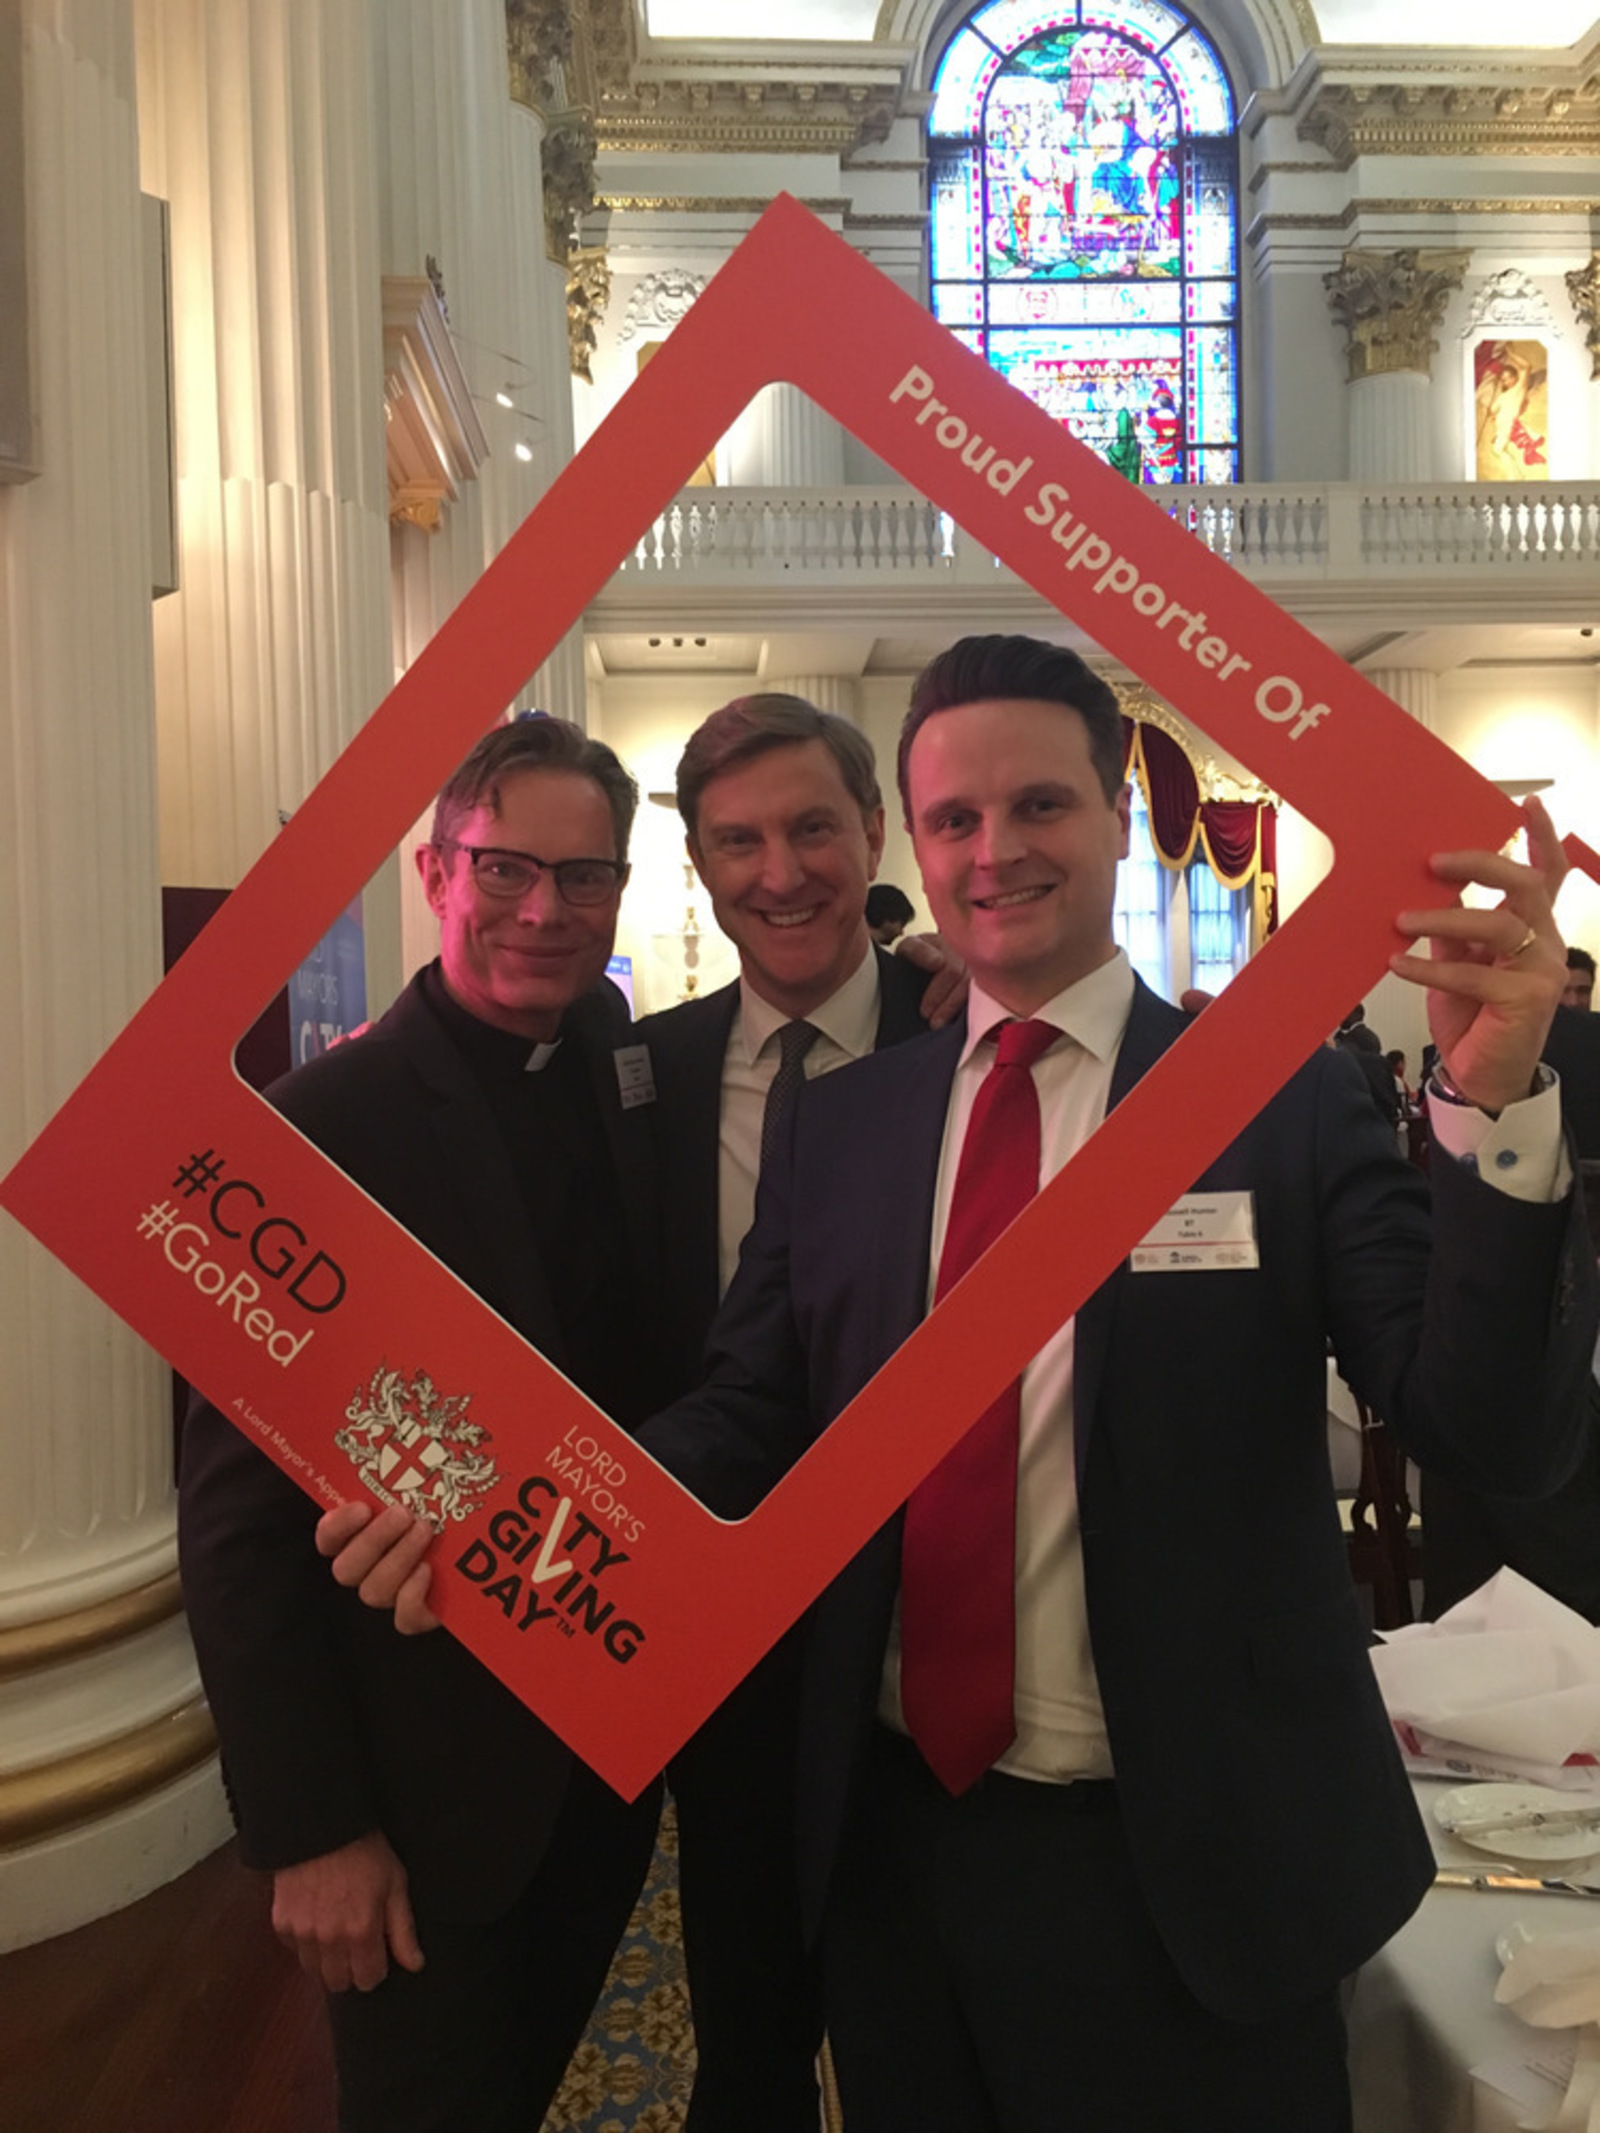 Robert at Mansion House for the launch of City Giving Day with Rev Kennedy of St Vedast and Russell Hunter of BT